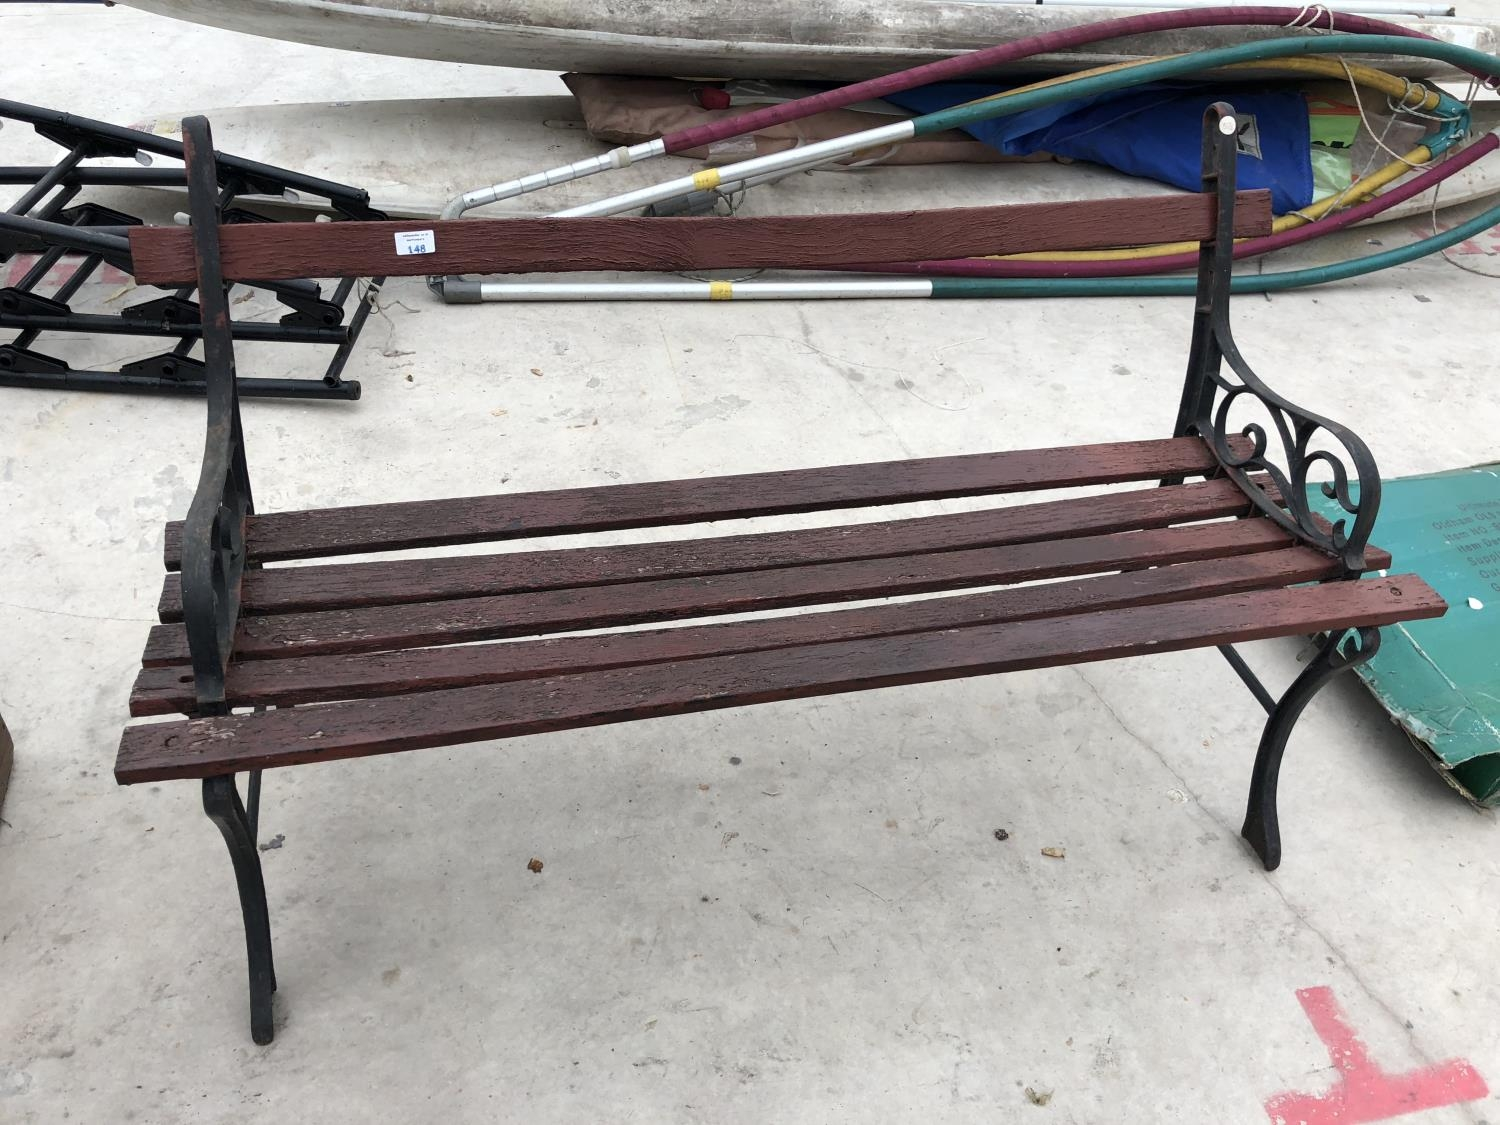 Tremendous A Vintage Wooden Garden Bench With Cast Metal Ends Caraccident5 Cool Chair Designs And Ideas Caraccident5Info